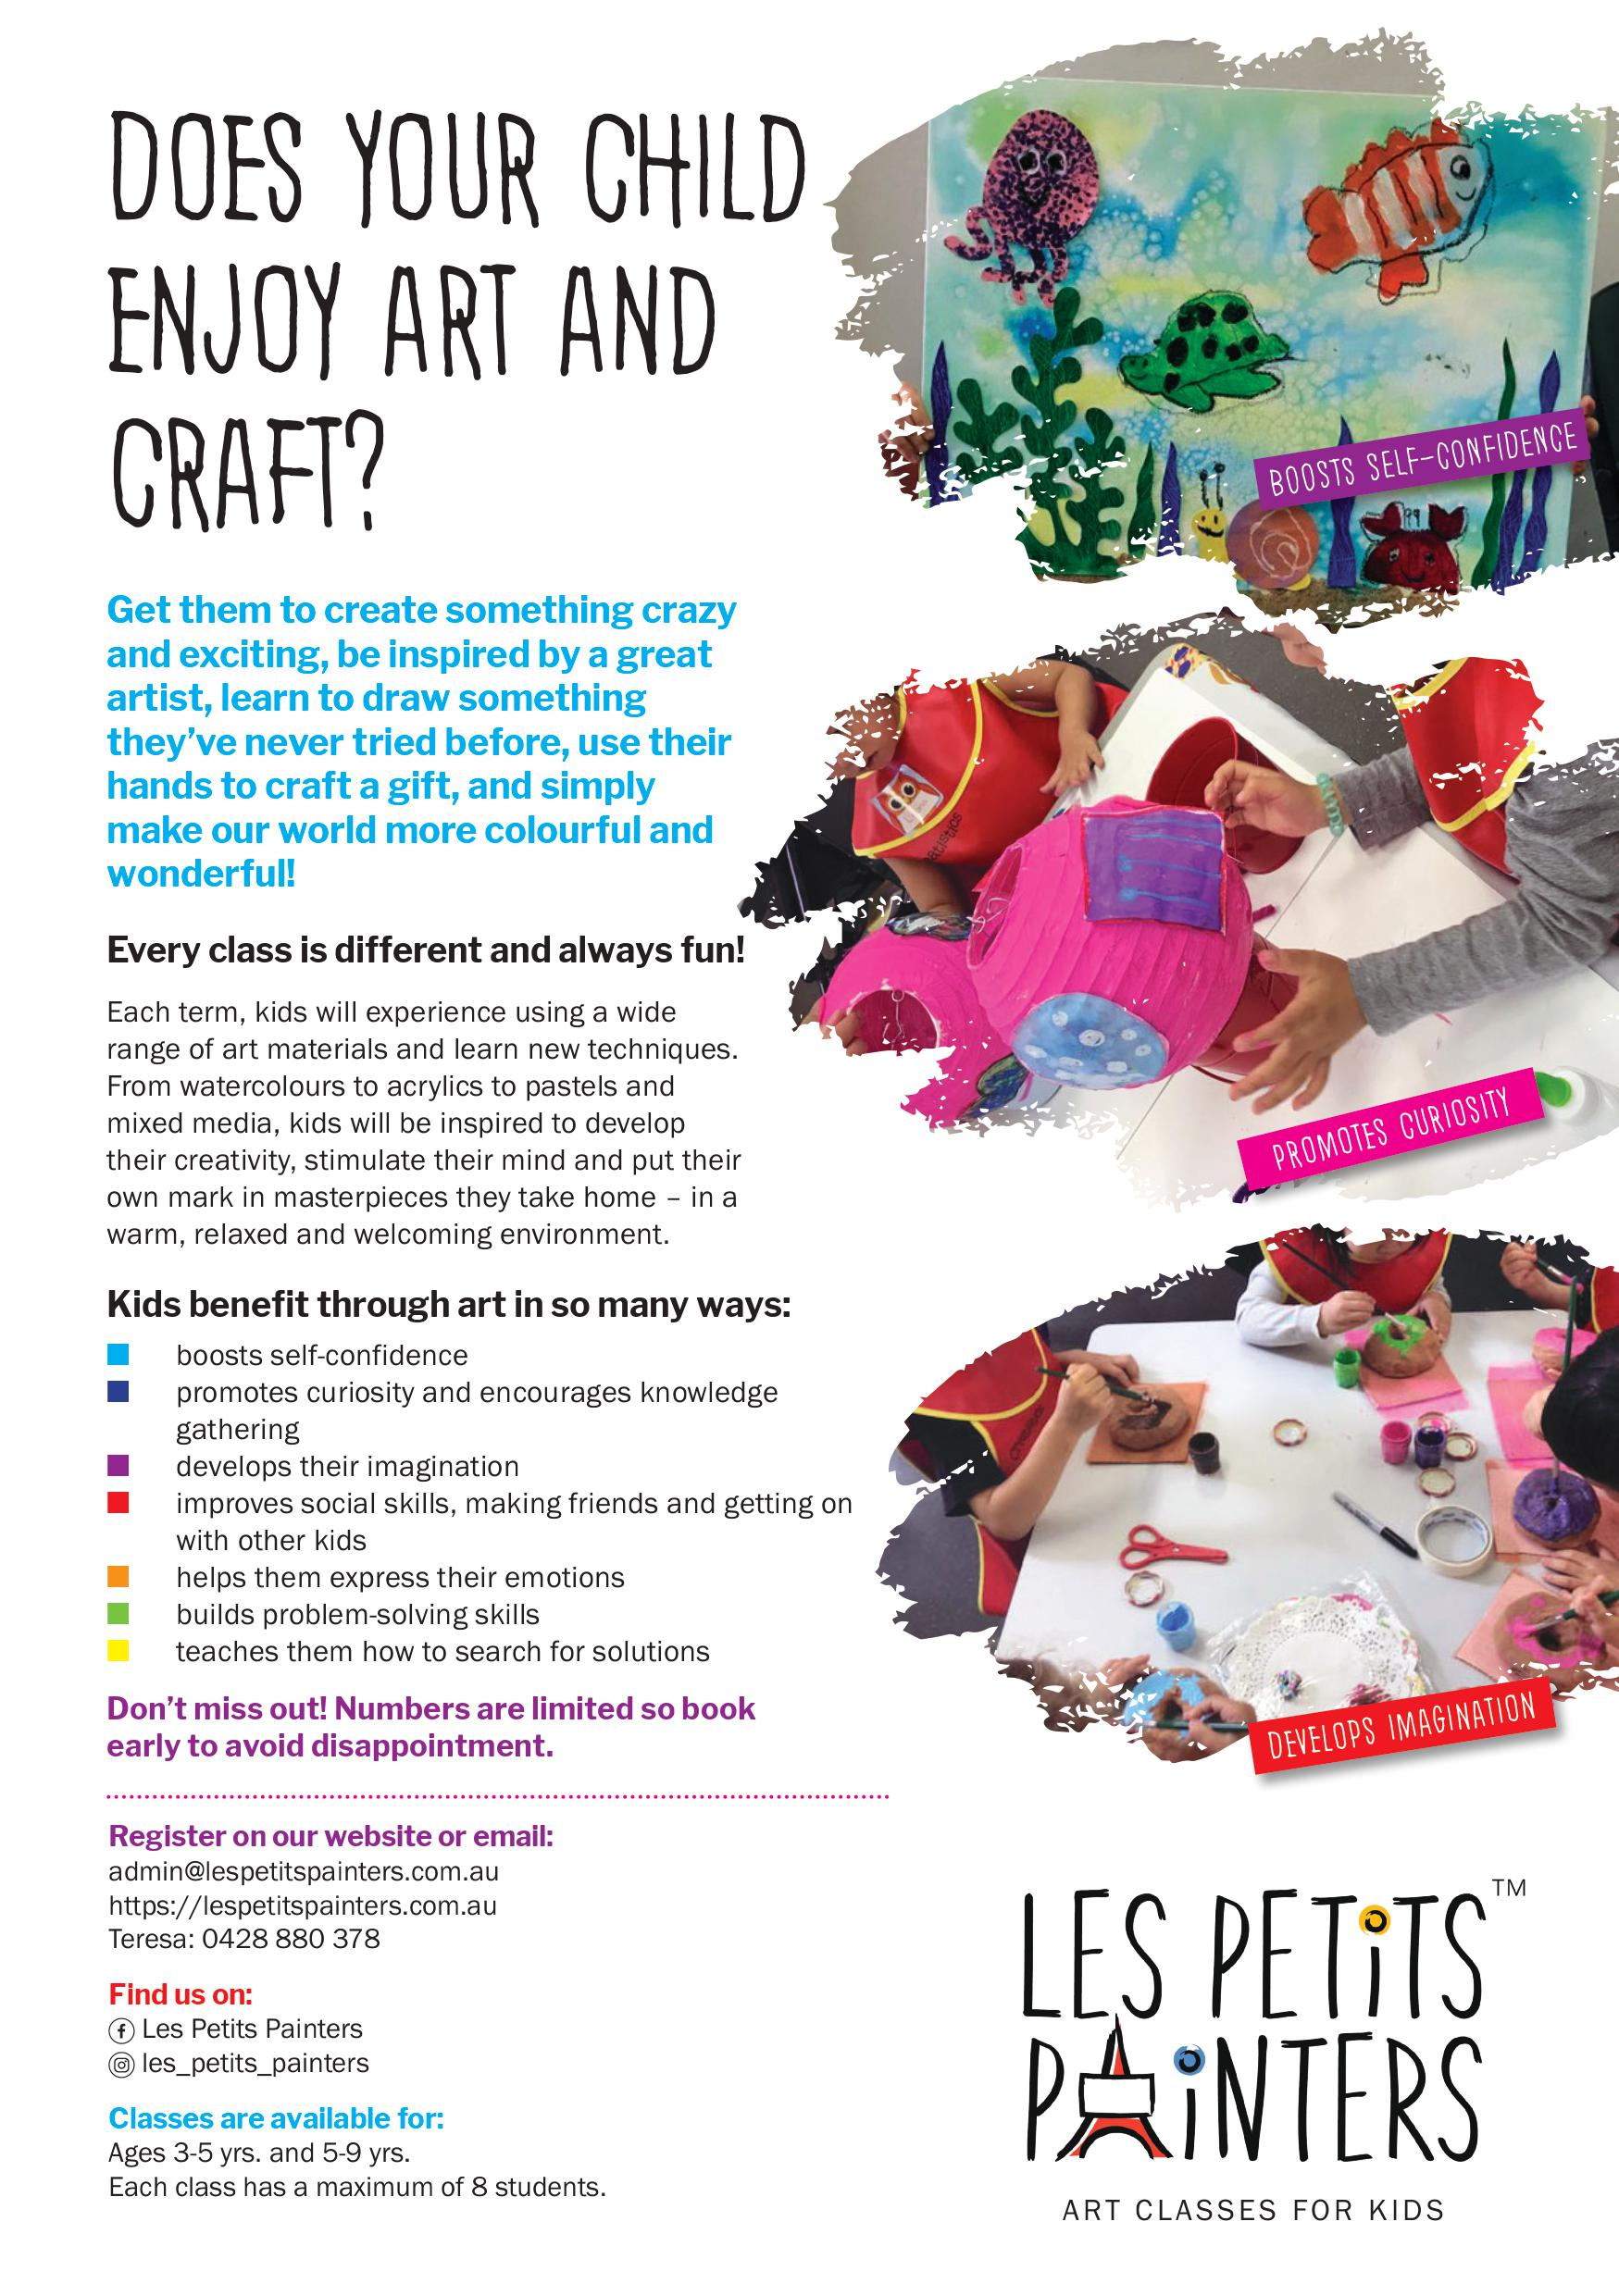 Art and craft classes for kids